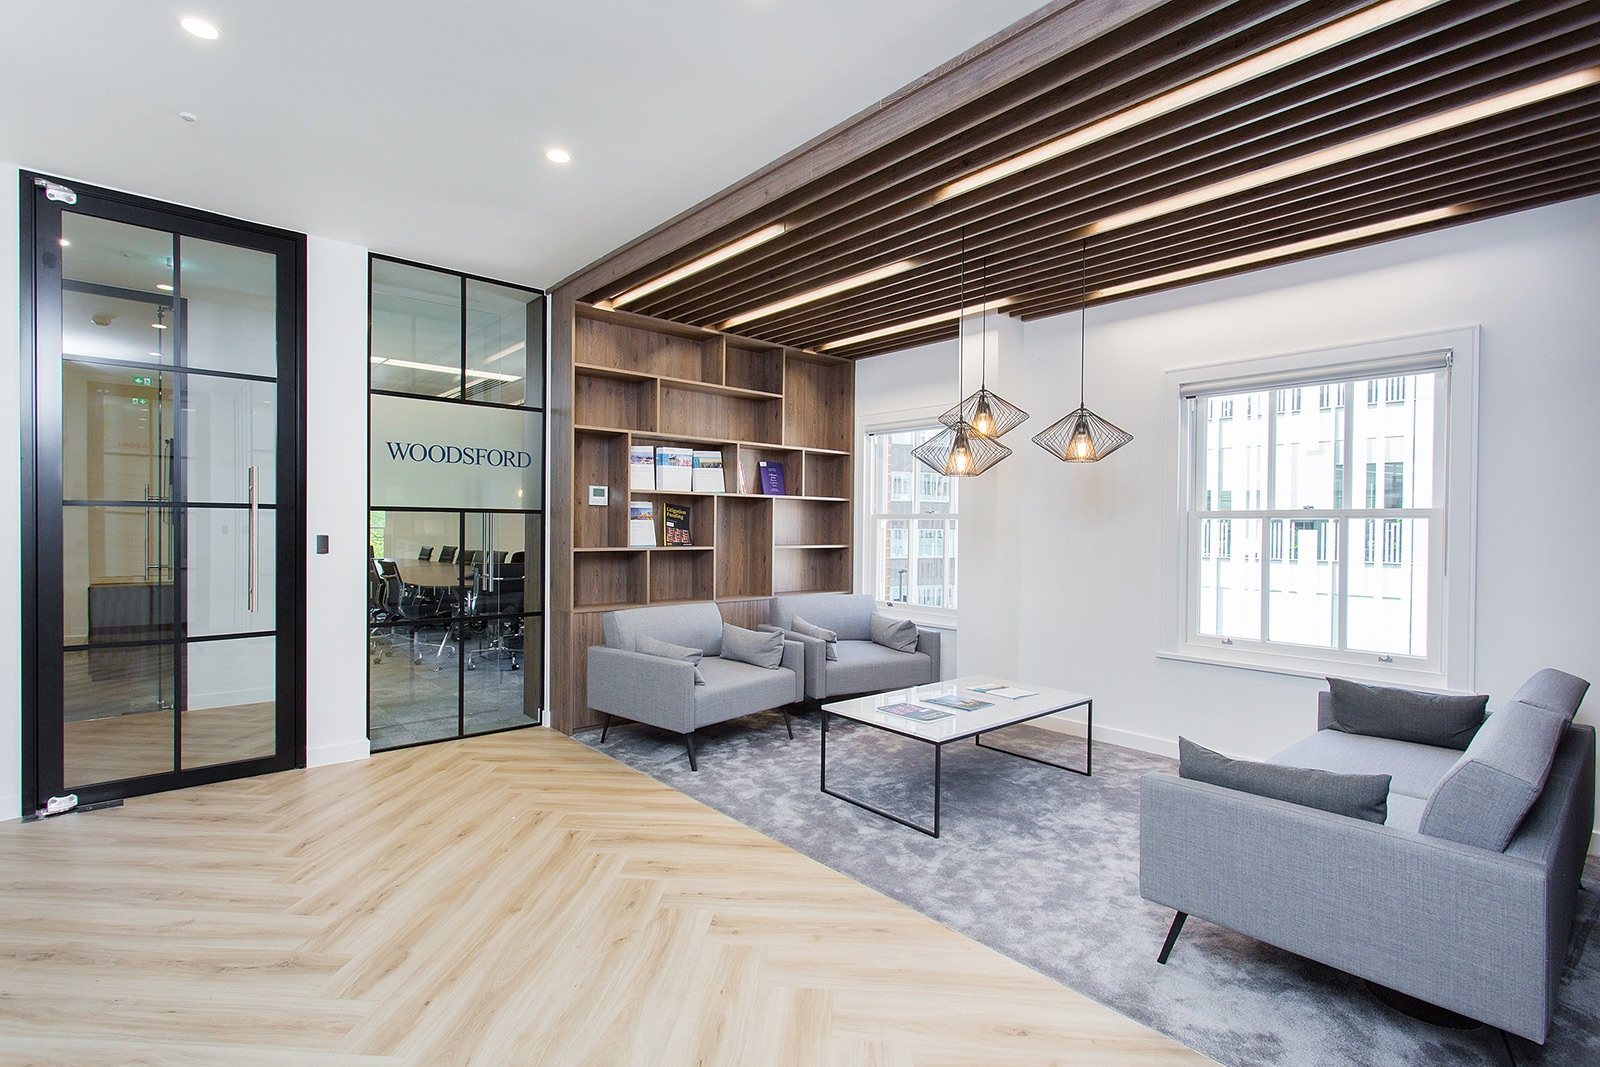 woodford-london-office-2